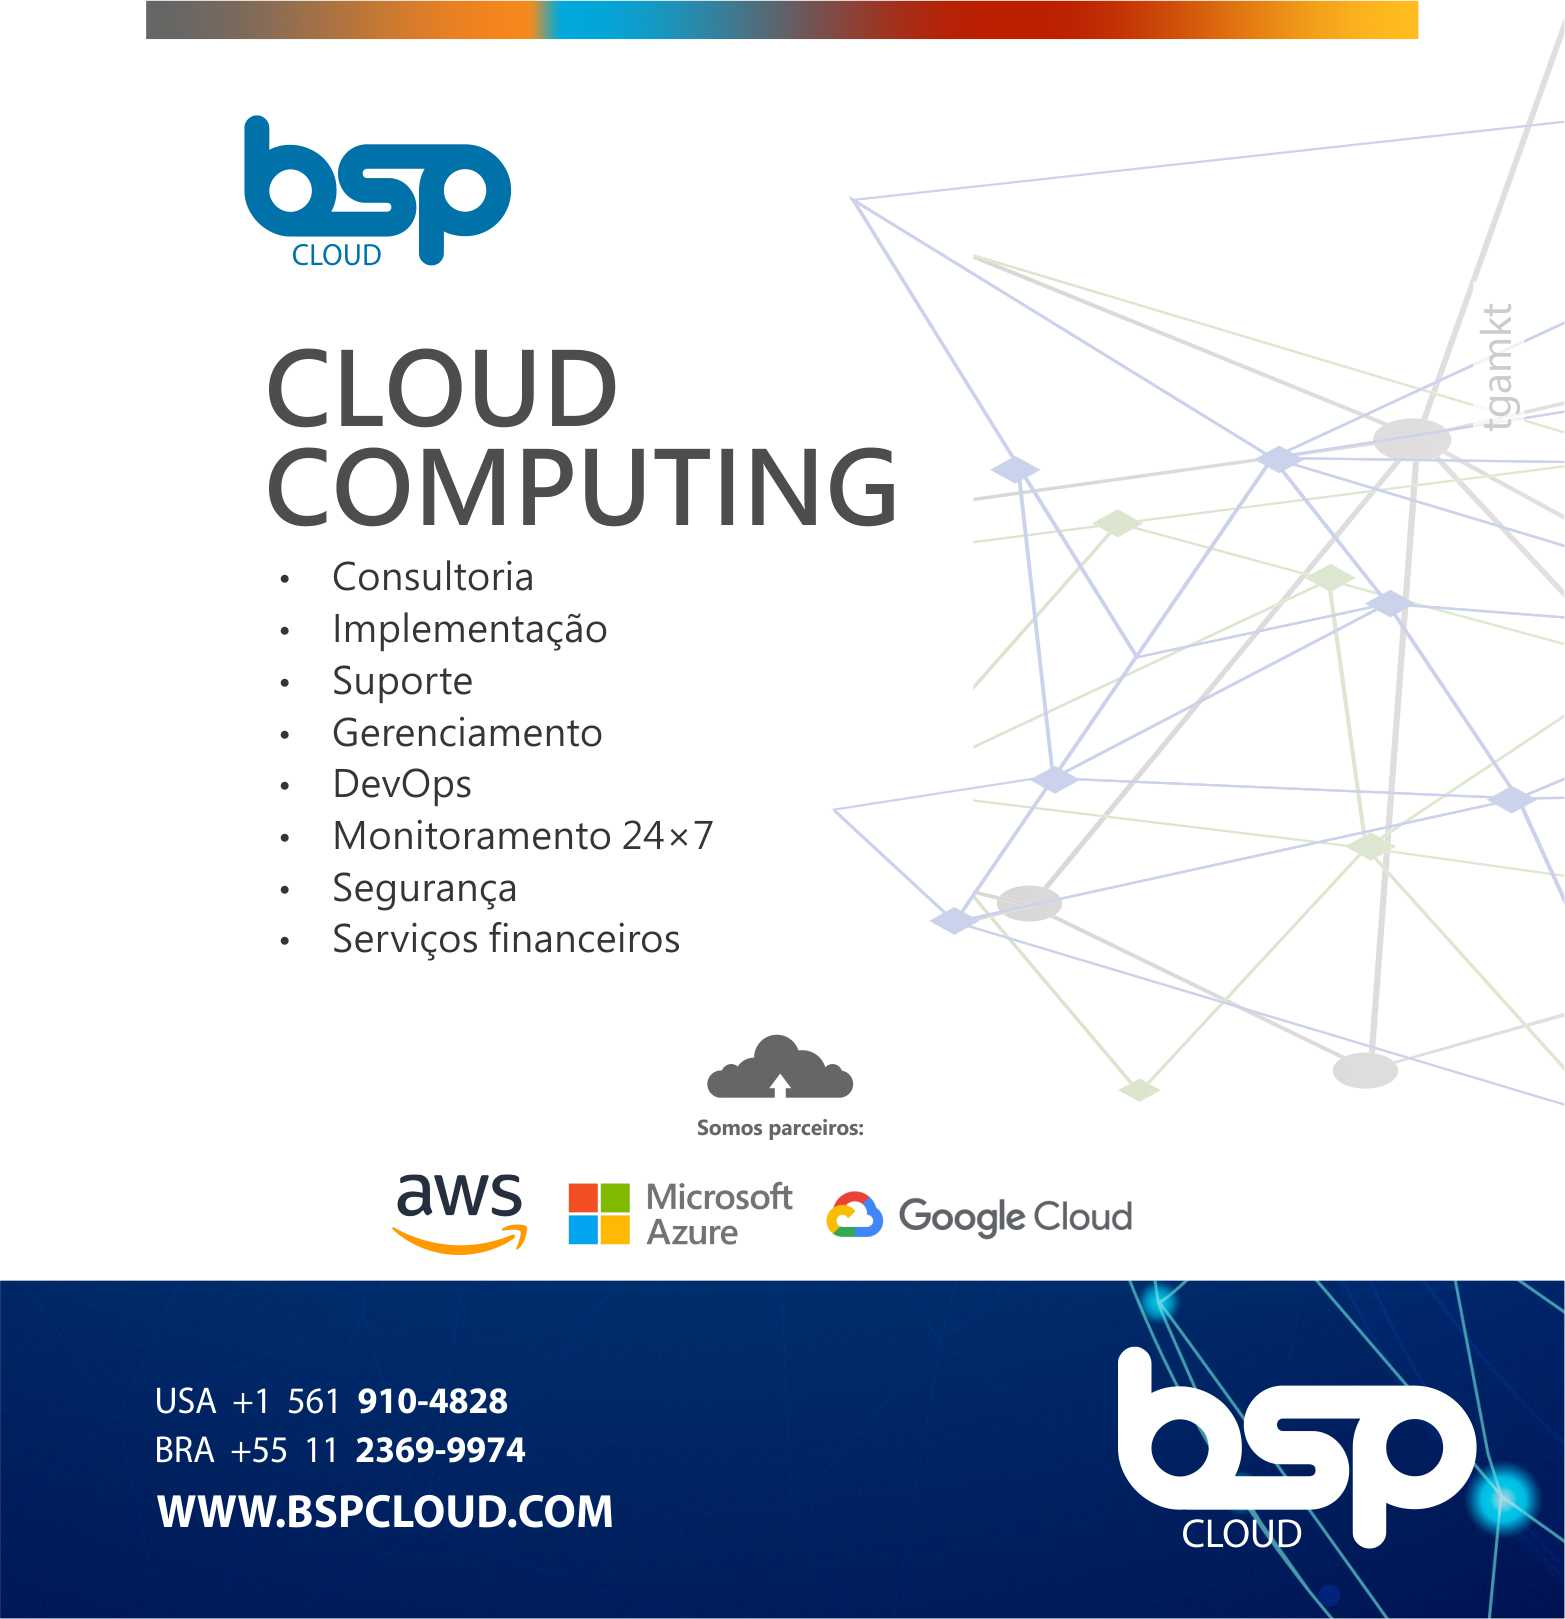 BSP Cloud Forte Atuação No Mercado De Multi Cloud – Cloud Broker